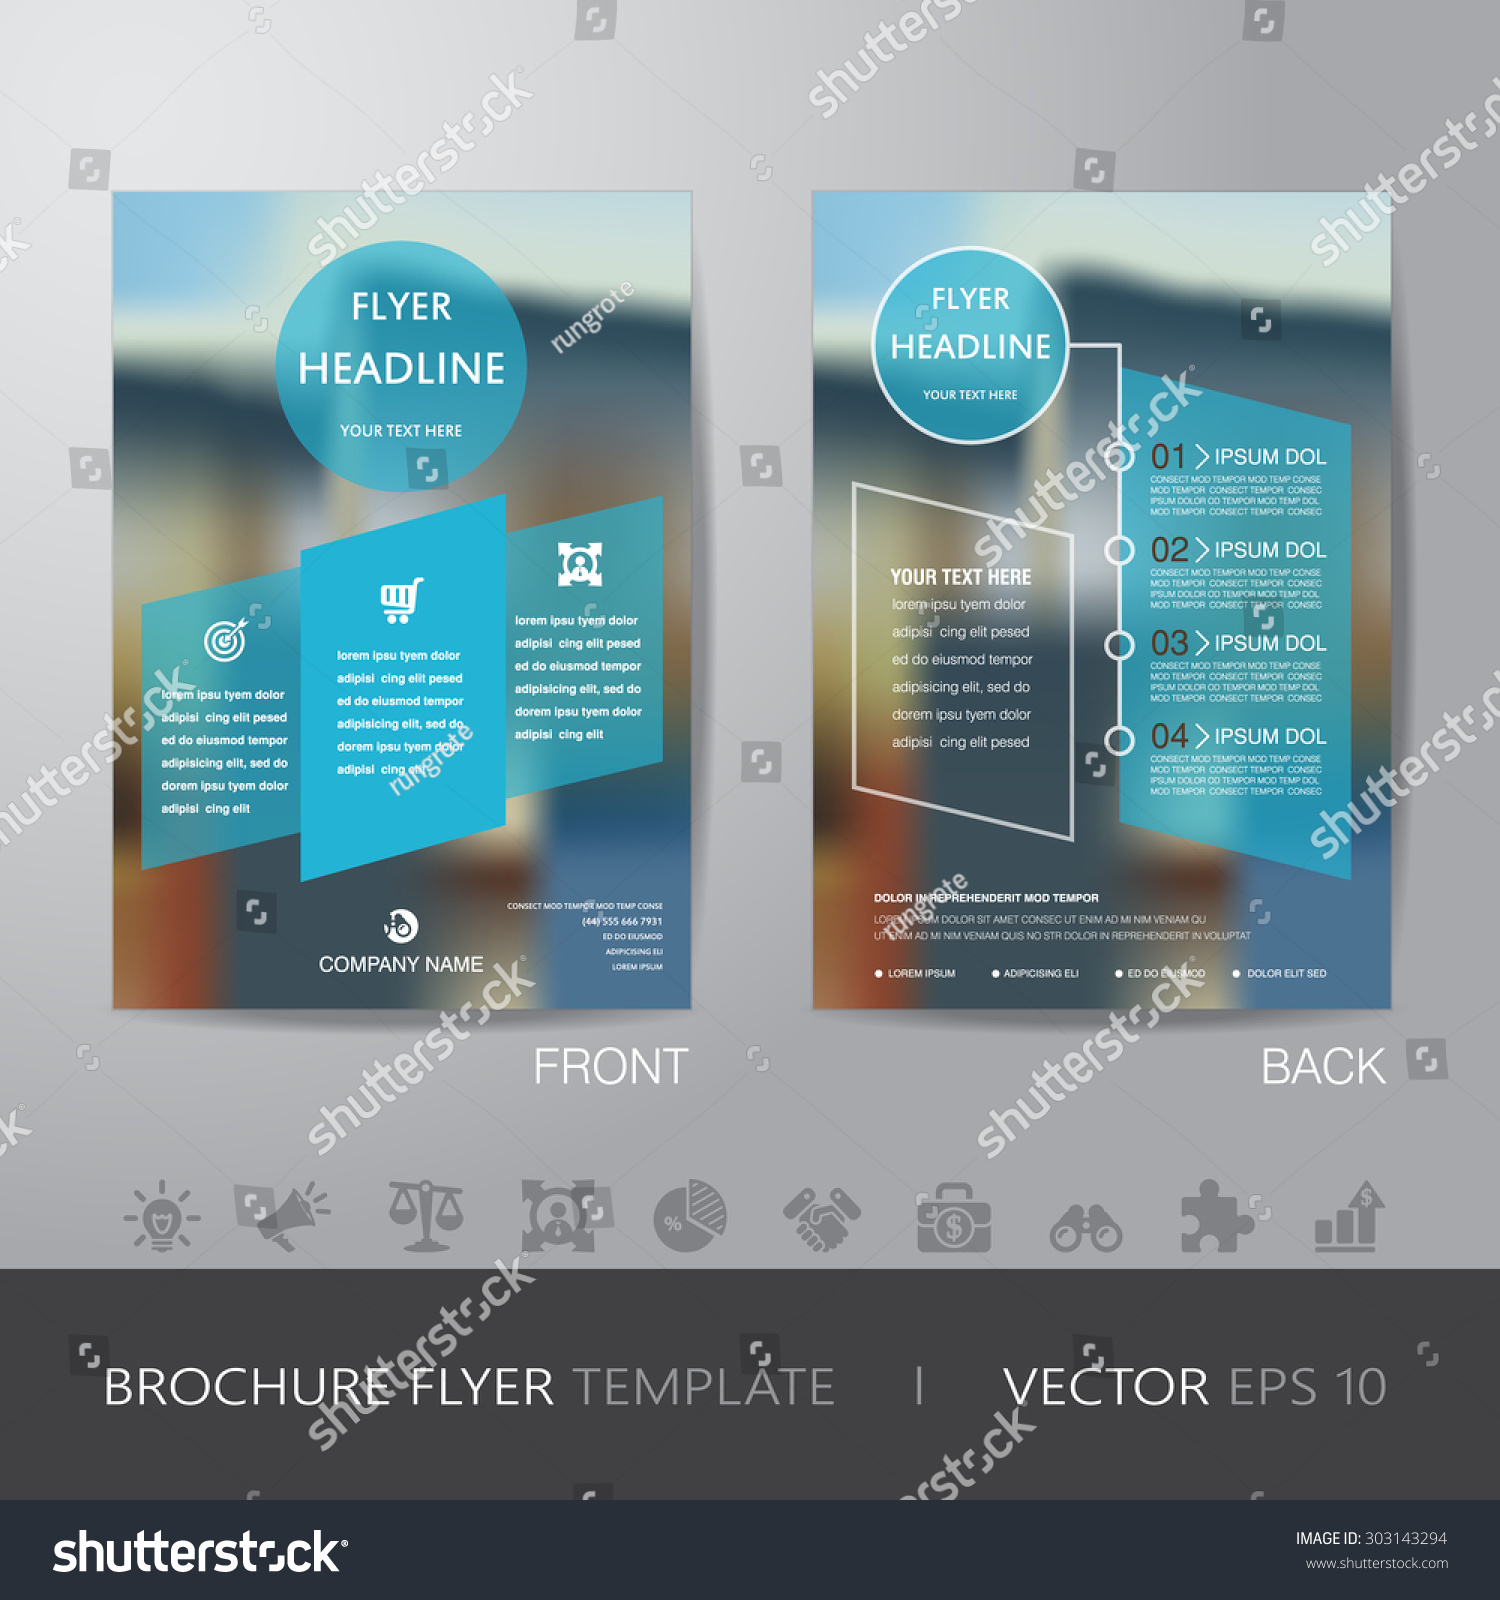 corporate blur background brochure flyer design stock vector corporate blur background brochure flyer design layout template in a4 size icon for your